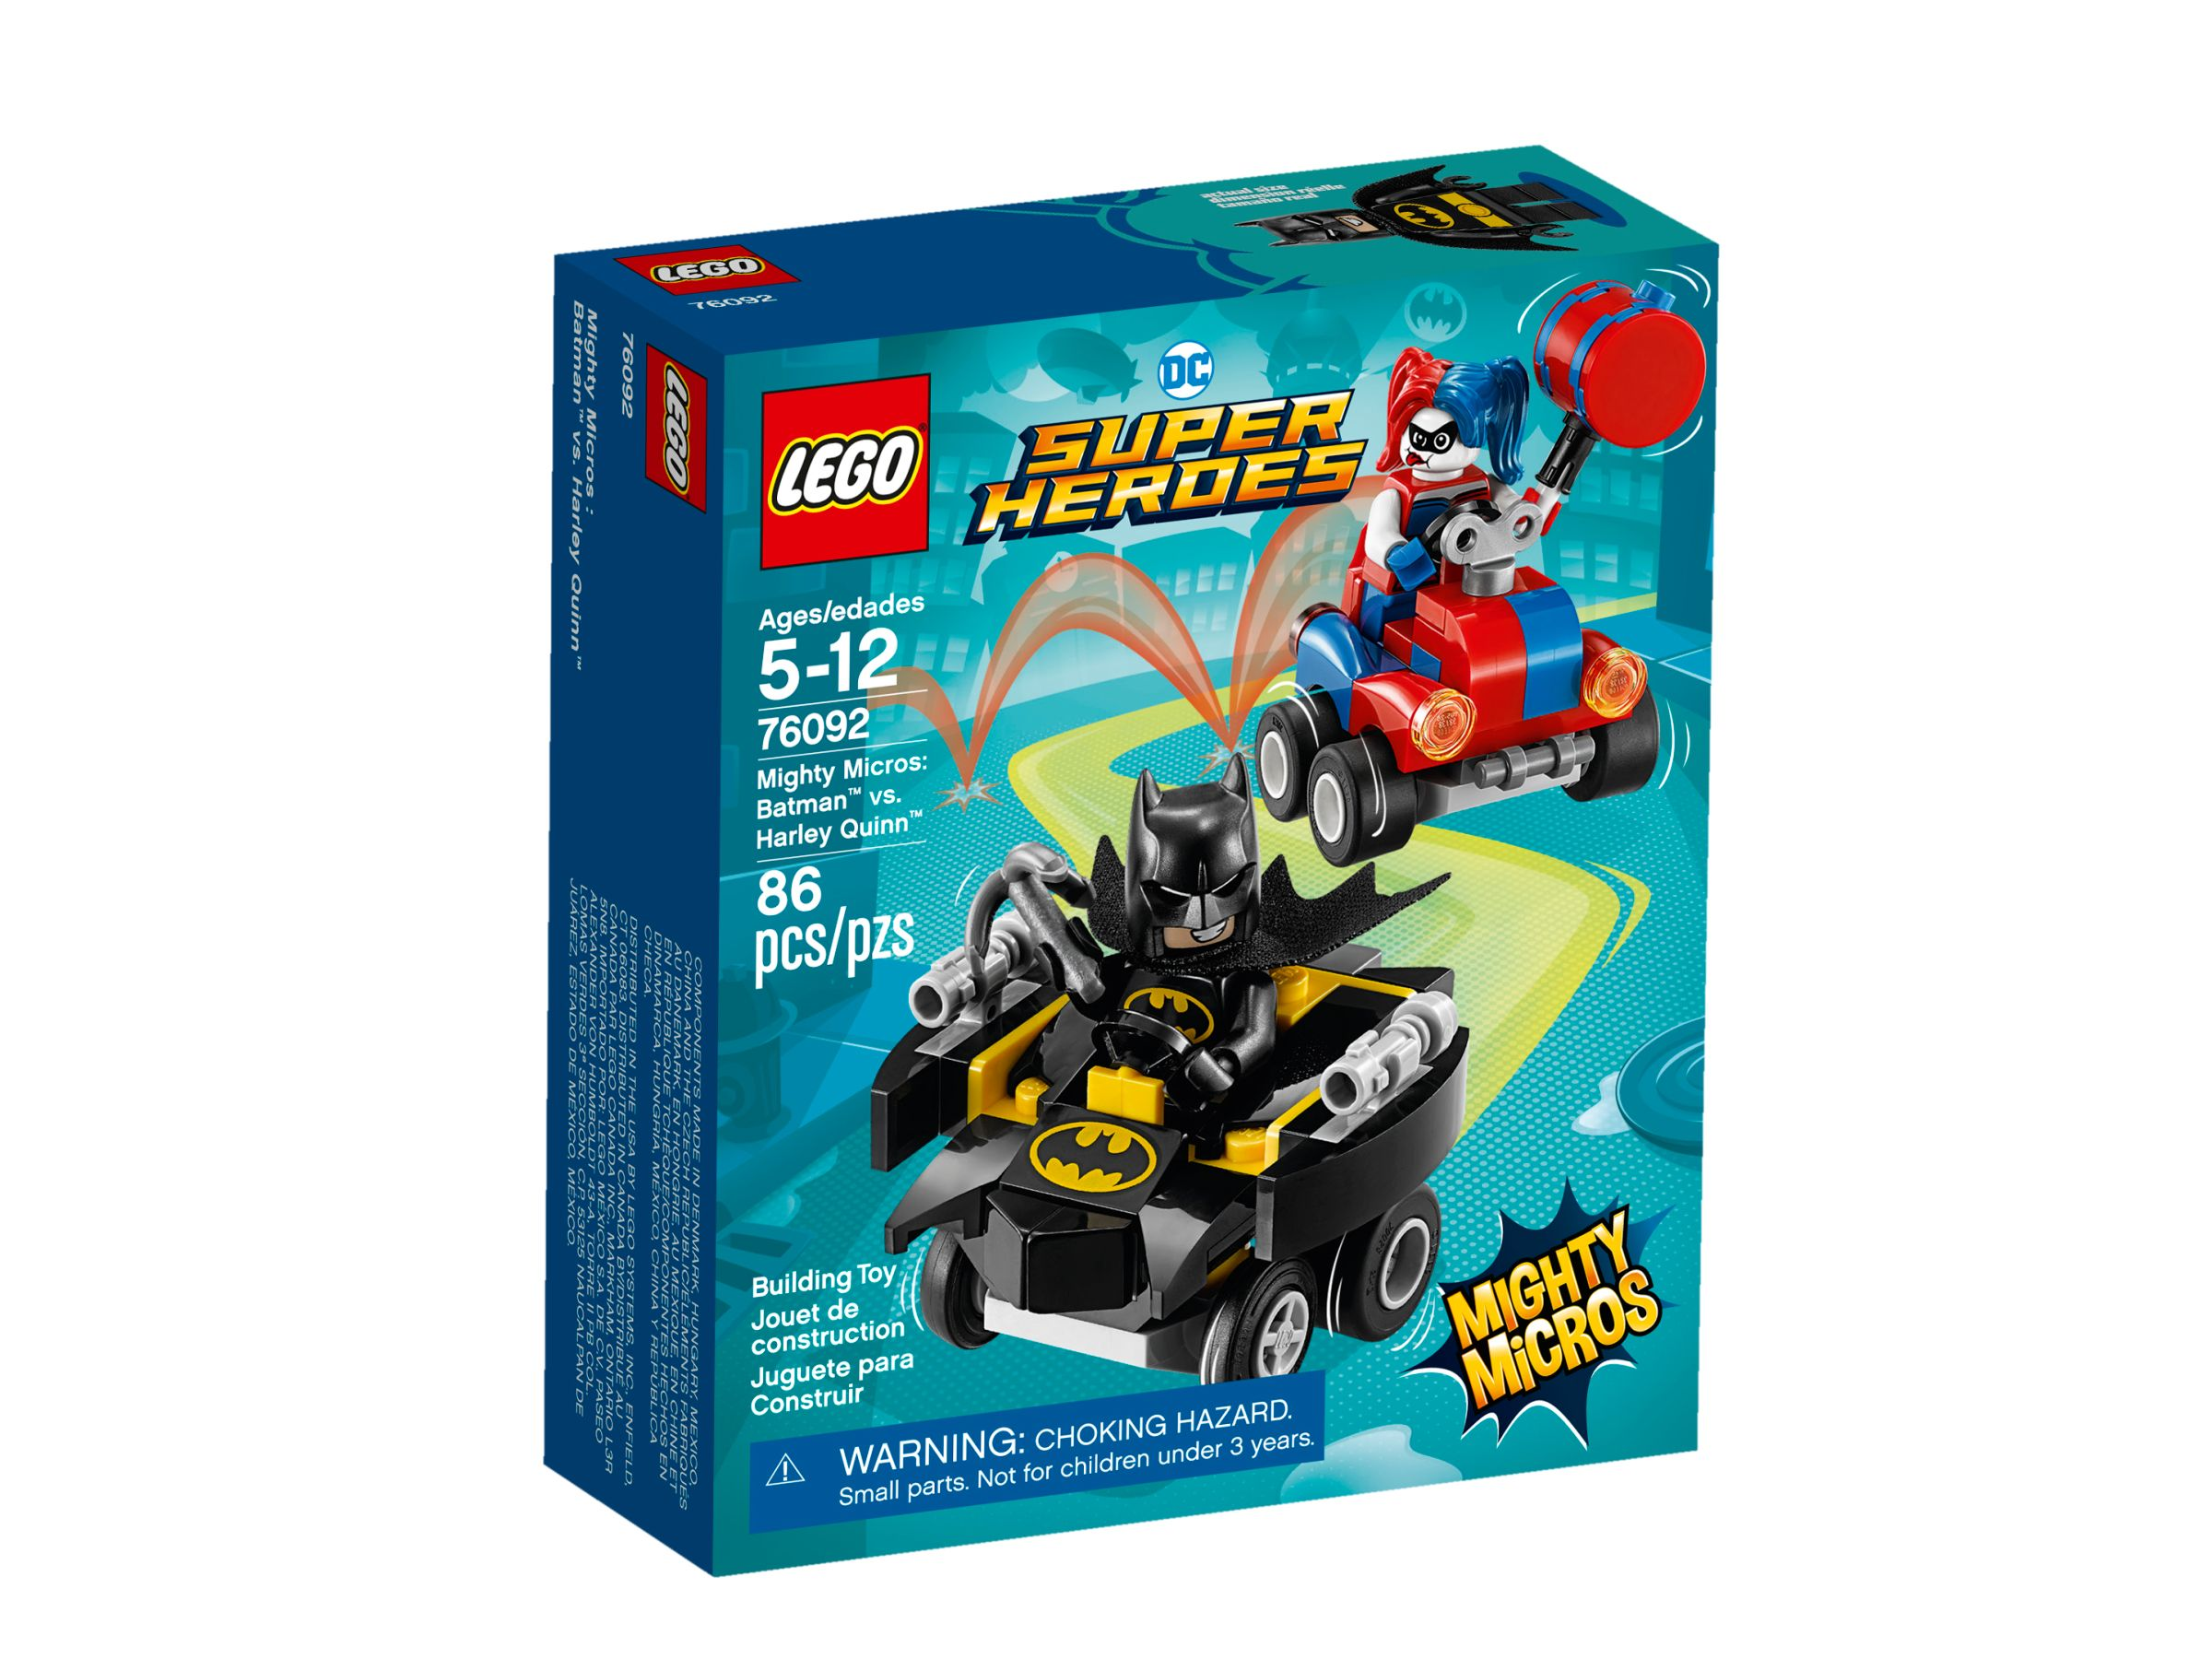 LEGO Super Heroes 76092 Mighty Micros: Batman vs. Harley Quinn LEGO_76092_alt1.jpg